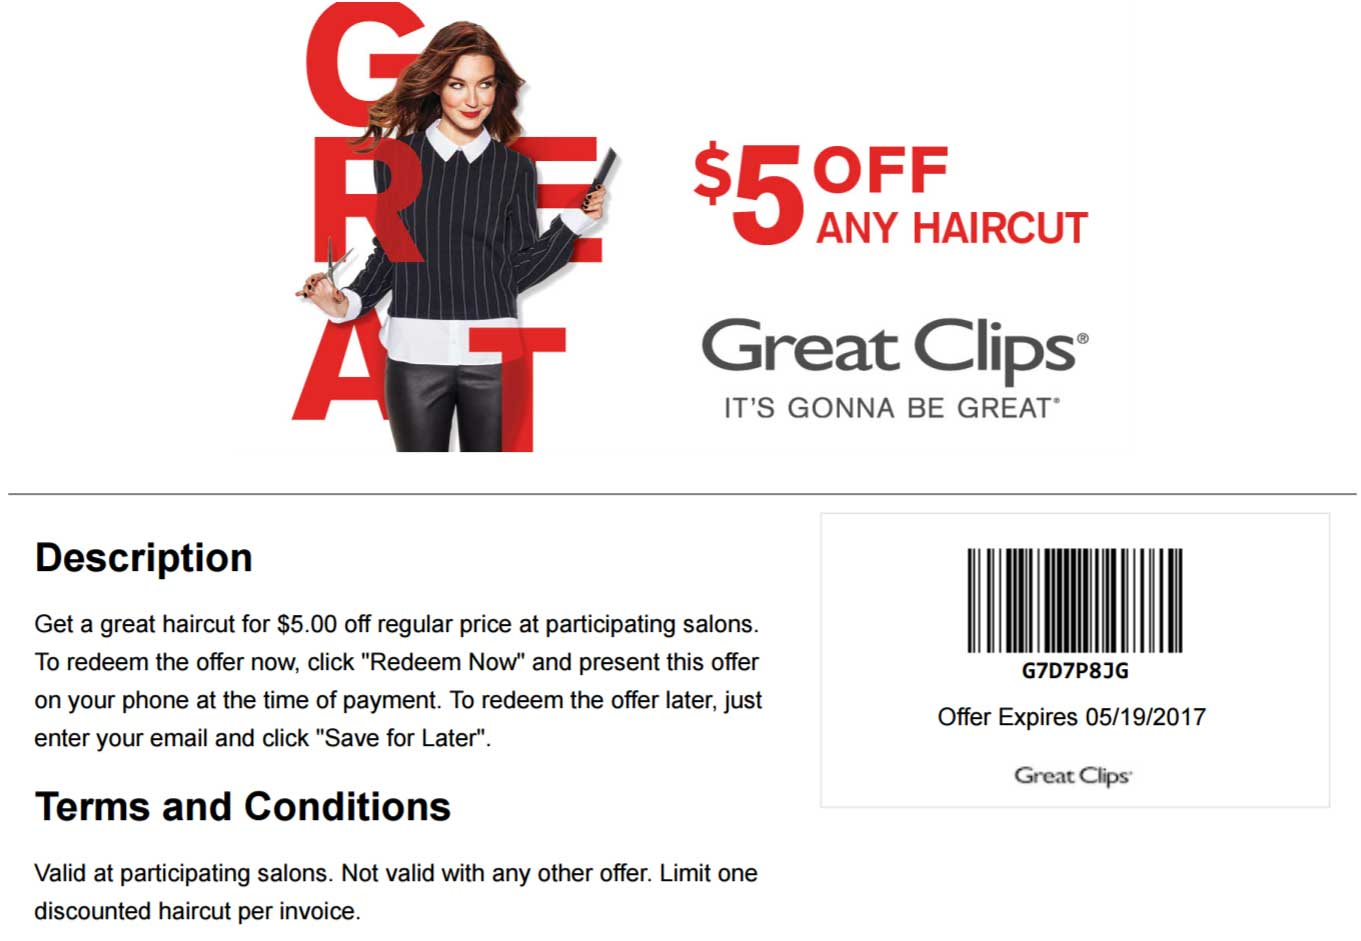 Great Clips Coupons 5 Off A Haircut At Great Clips